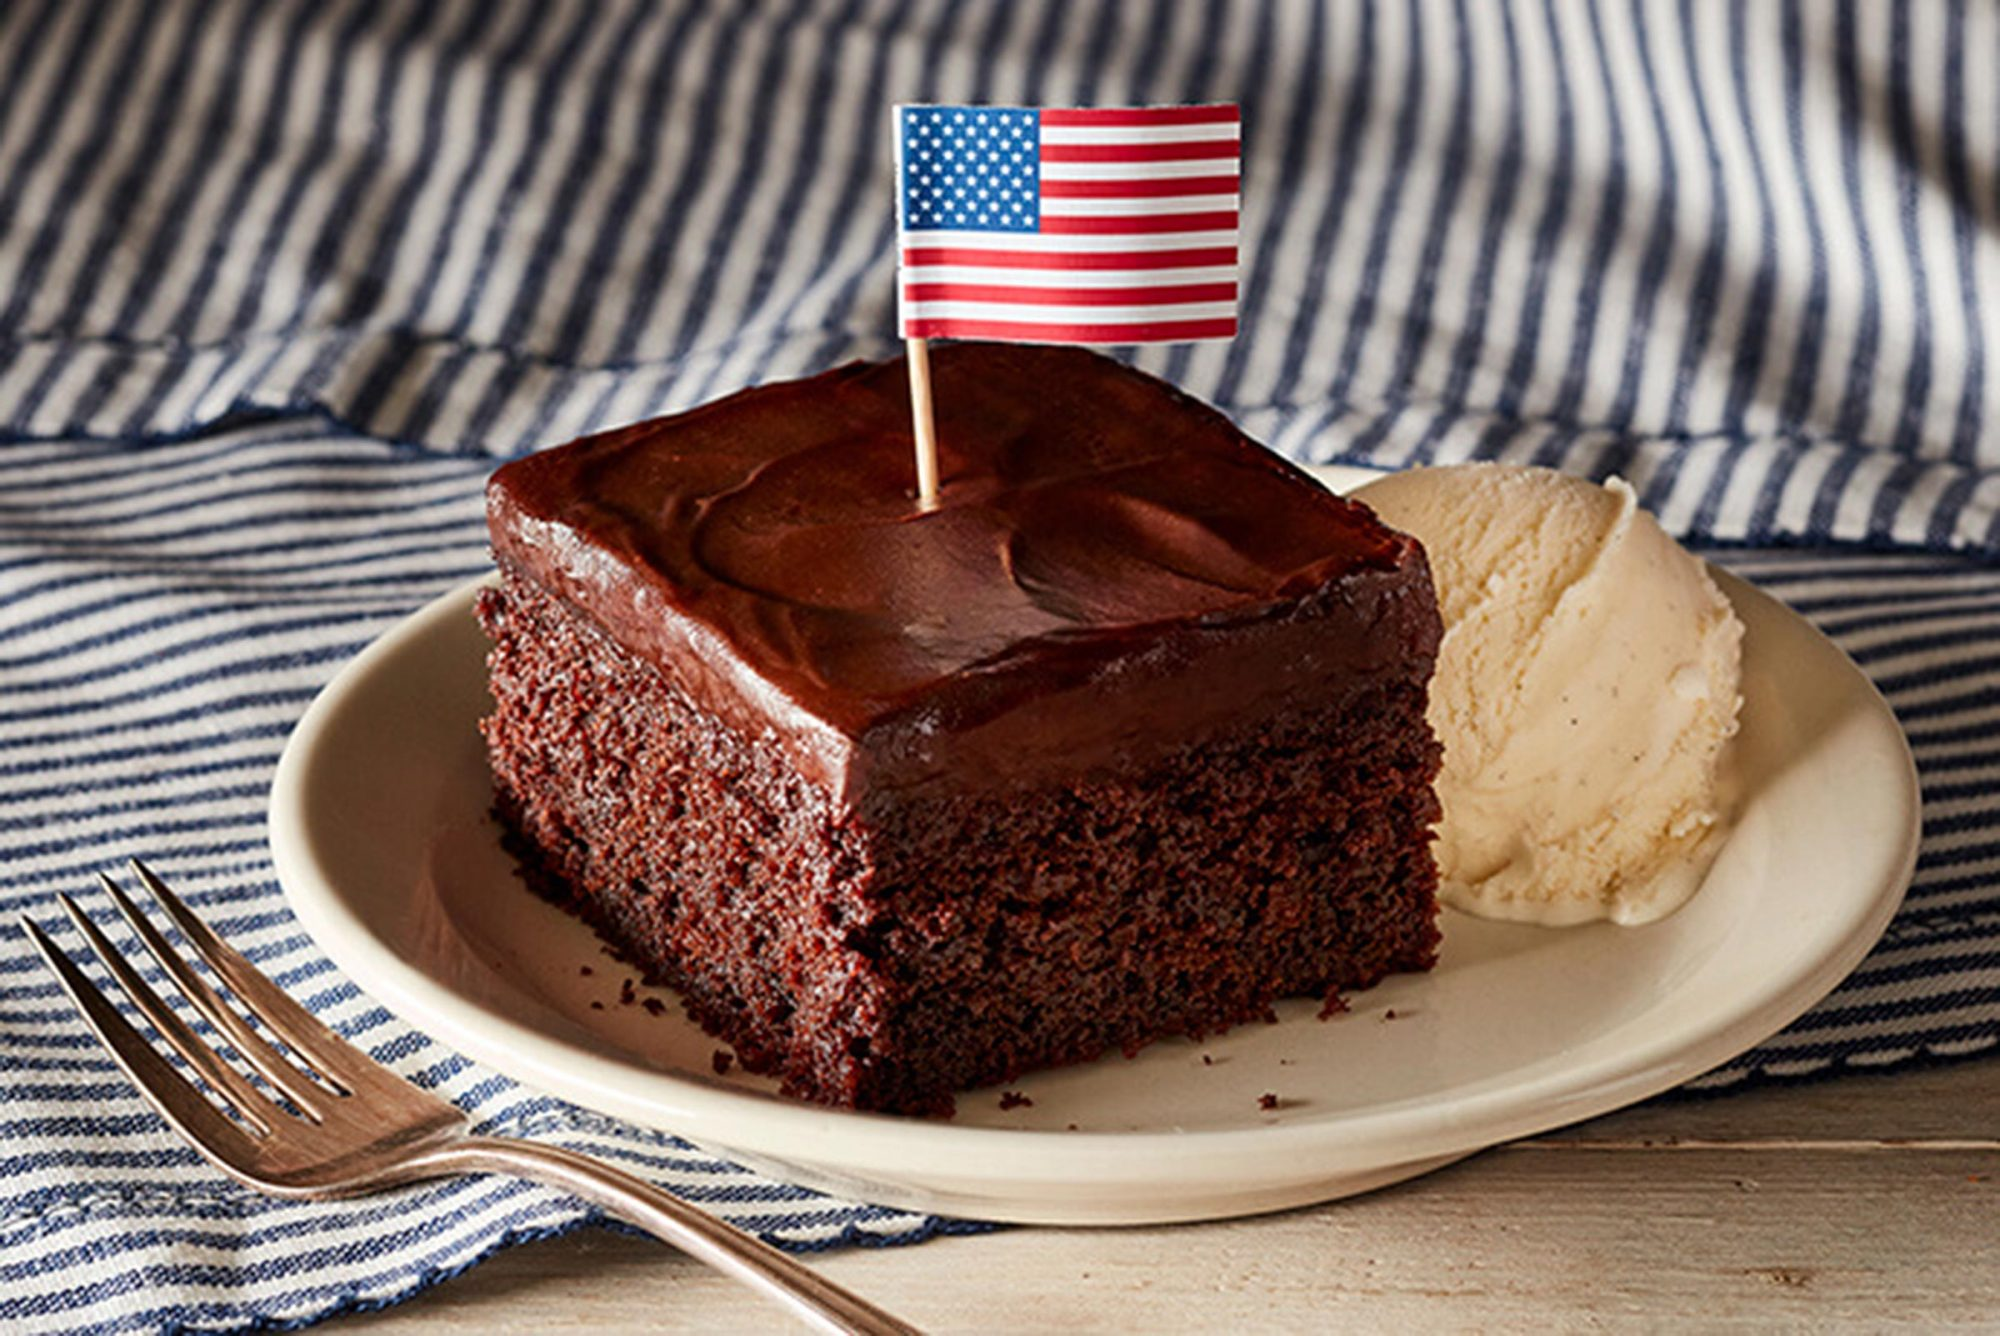 piece of Chocolate Cake with a tiny american flag on top